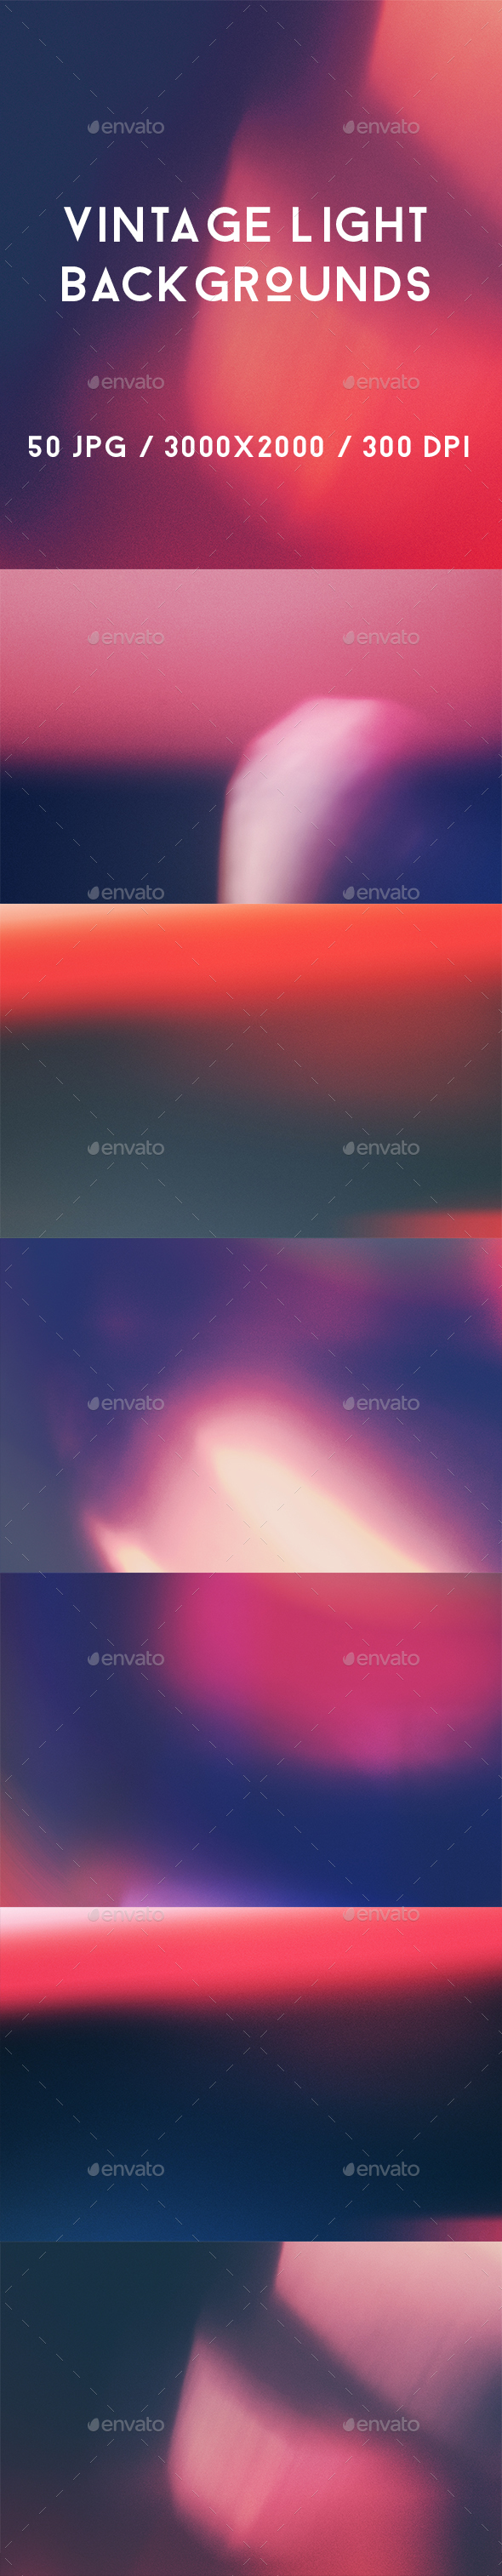 50 Vintage Light Backgrounds - Abstract Backgrounds